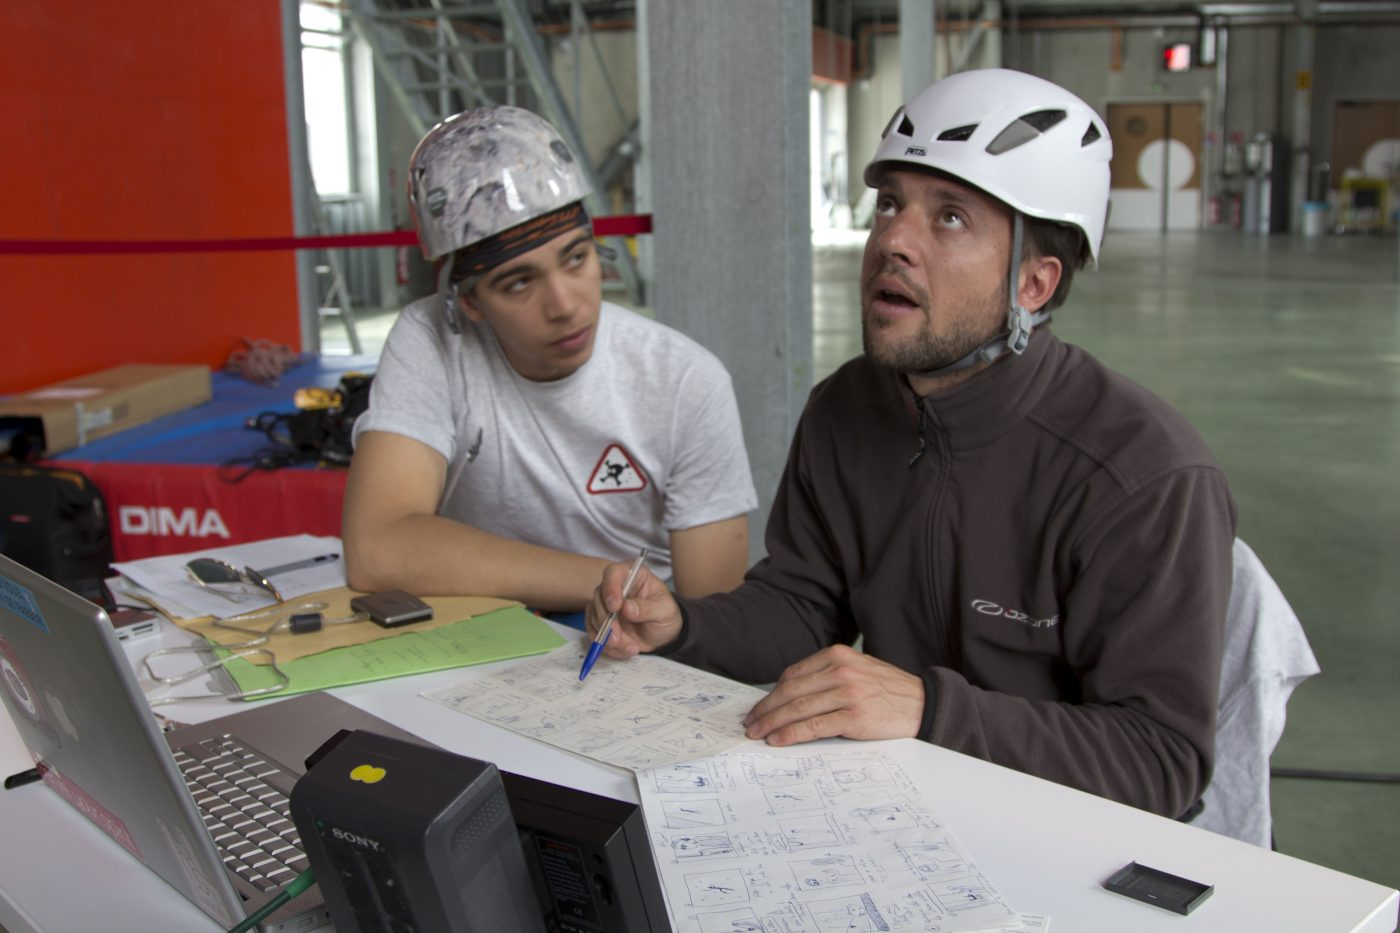 World Worst Belayer - Making-of - Guillaume Broust is checking the storyboard with Gilles Estramboulli - © Xavier Rivet